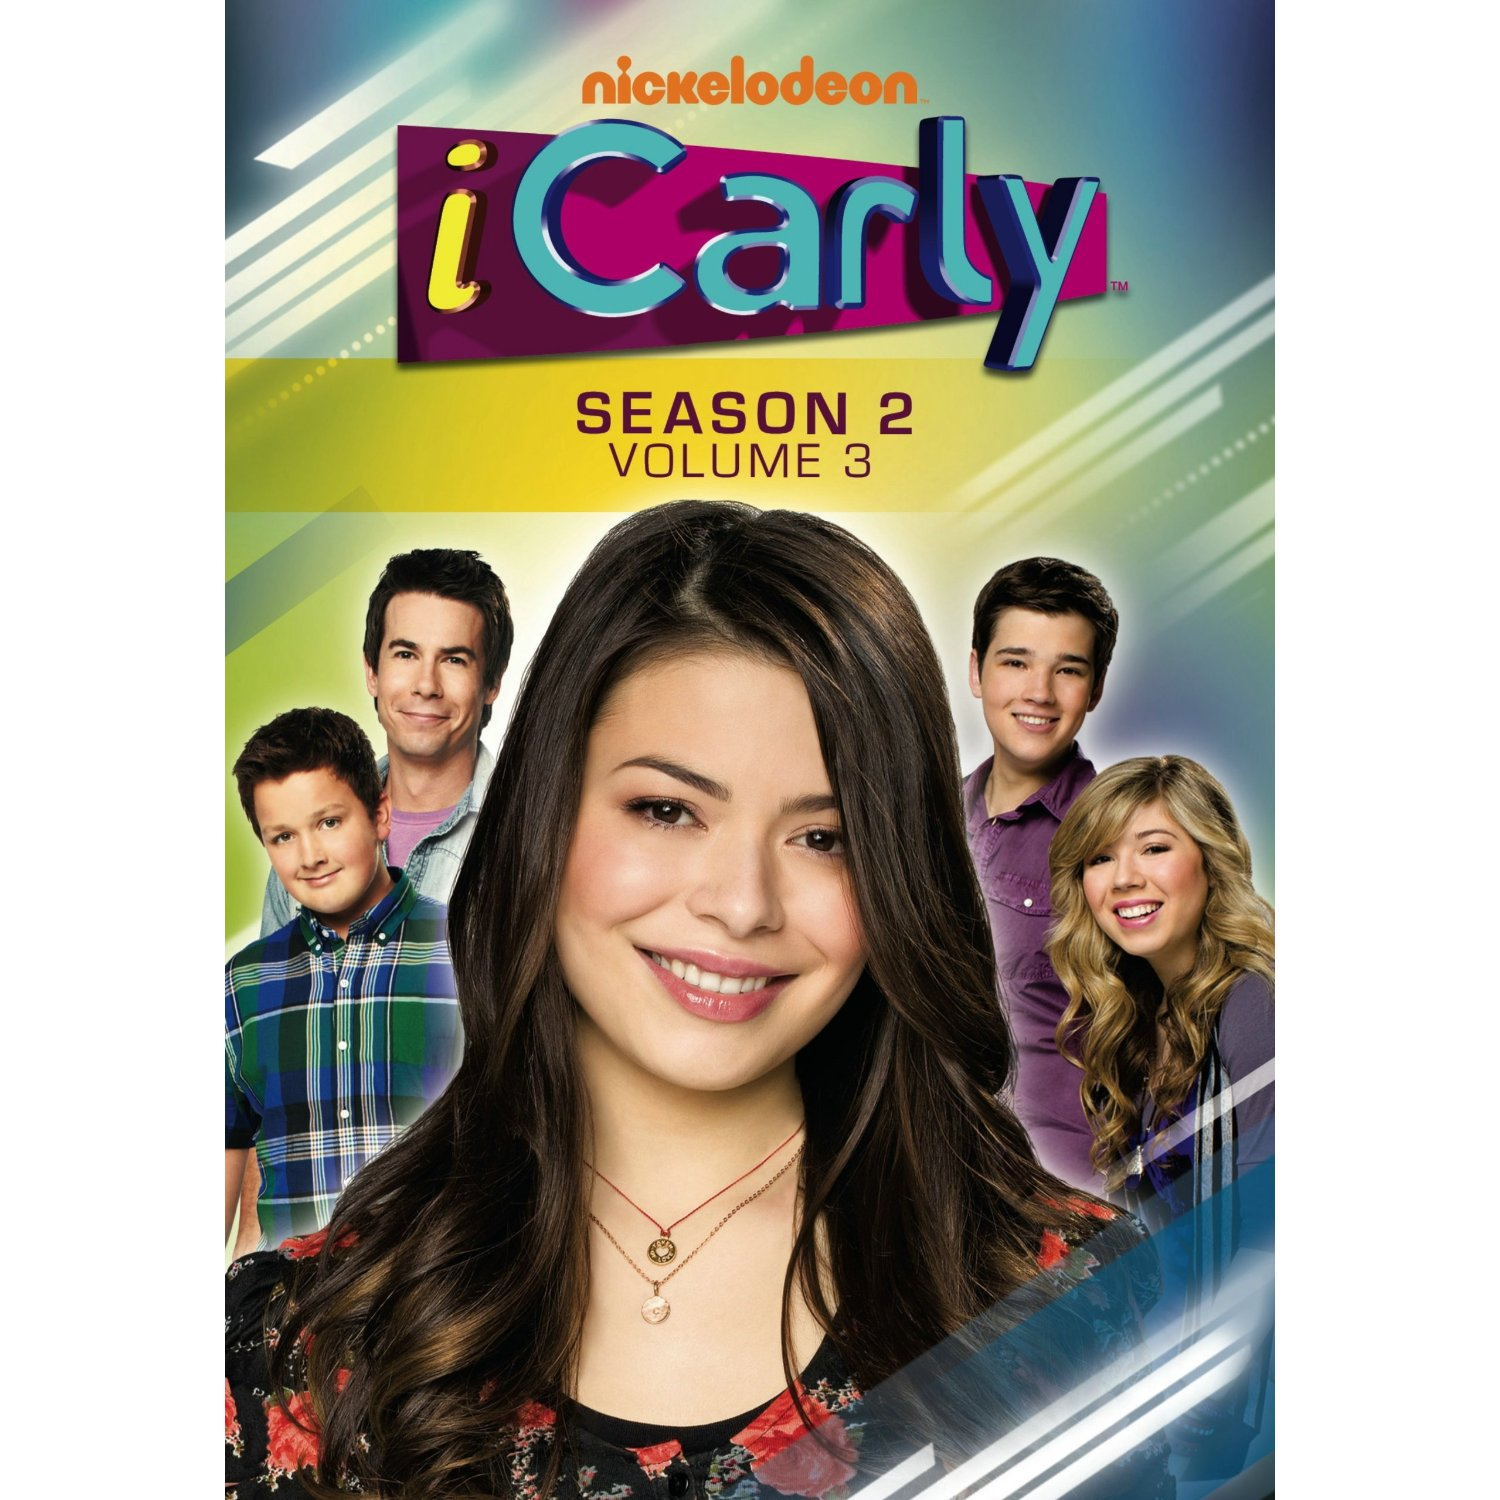 iCarly: Season 2, Volume 3 DVD set Giveaway